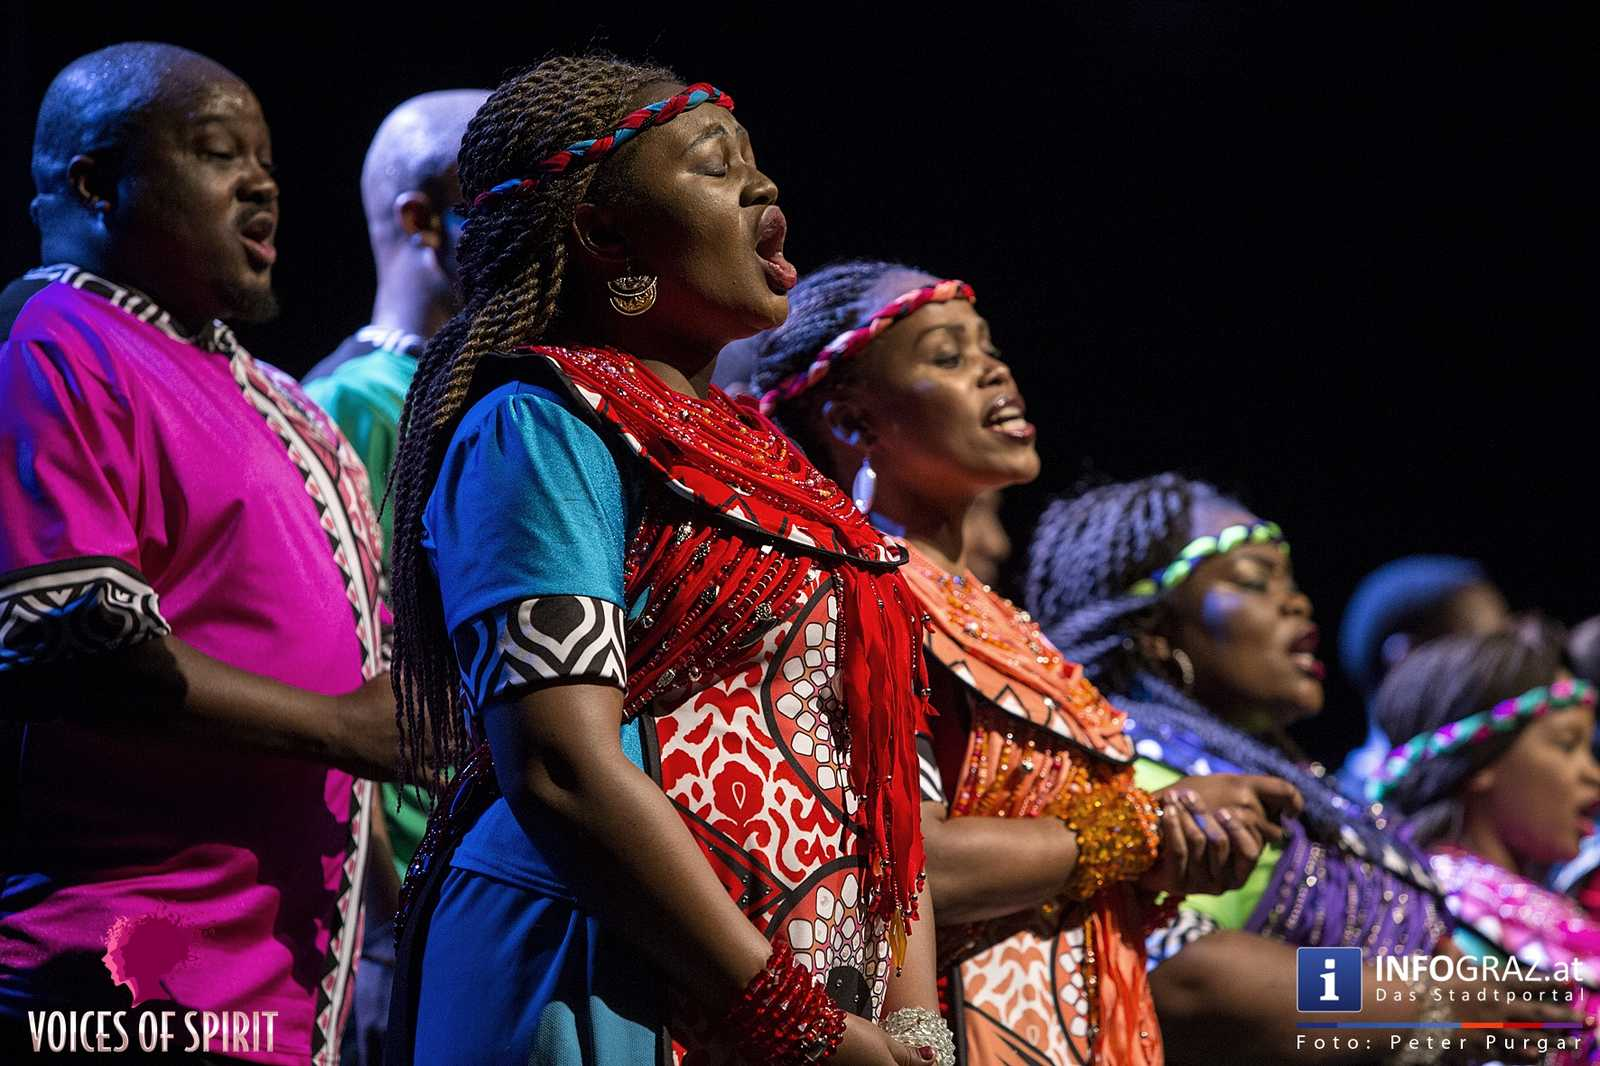 soweto gospel choir internationales chorfestival statdthalle graz voices of spirit eroeffnung festivals 2016 106